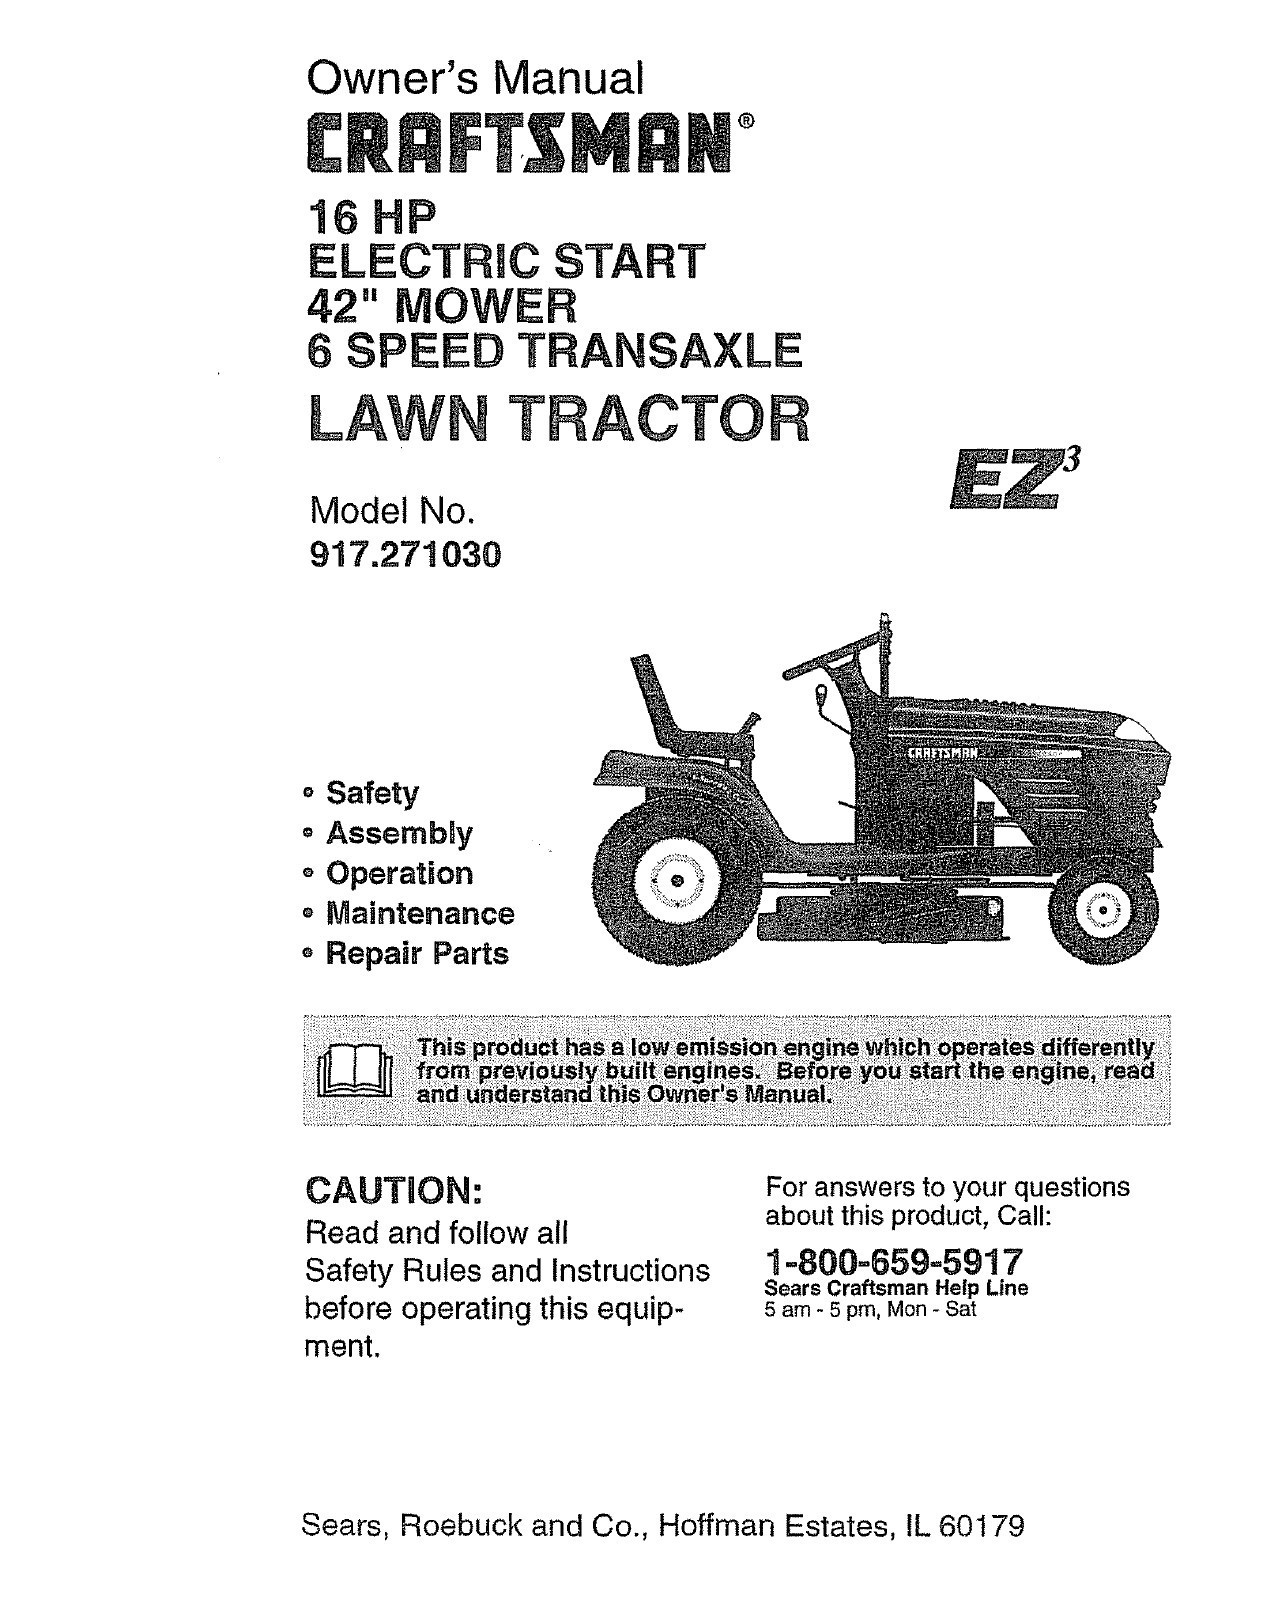 Wiring Diagram For Craftsman 917 276922 Riding Lawn Mower Circuit Fs5500 Tractor 19 Hp Schematic Electrical Sears